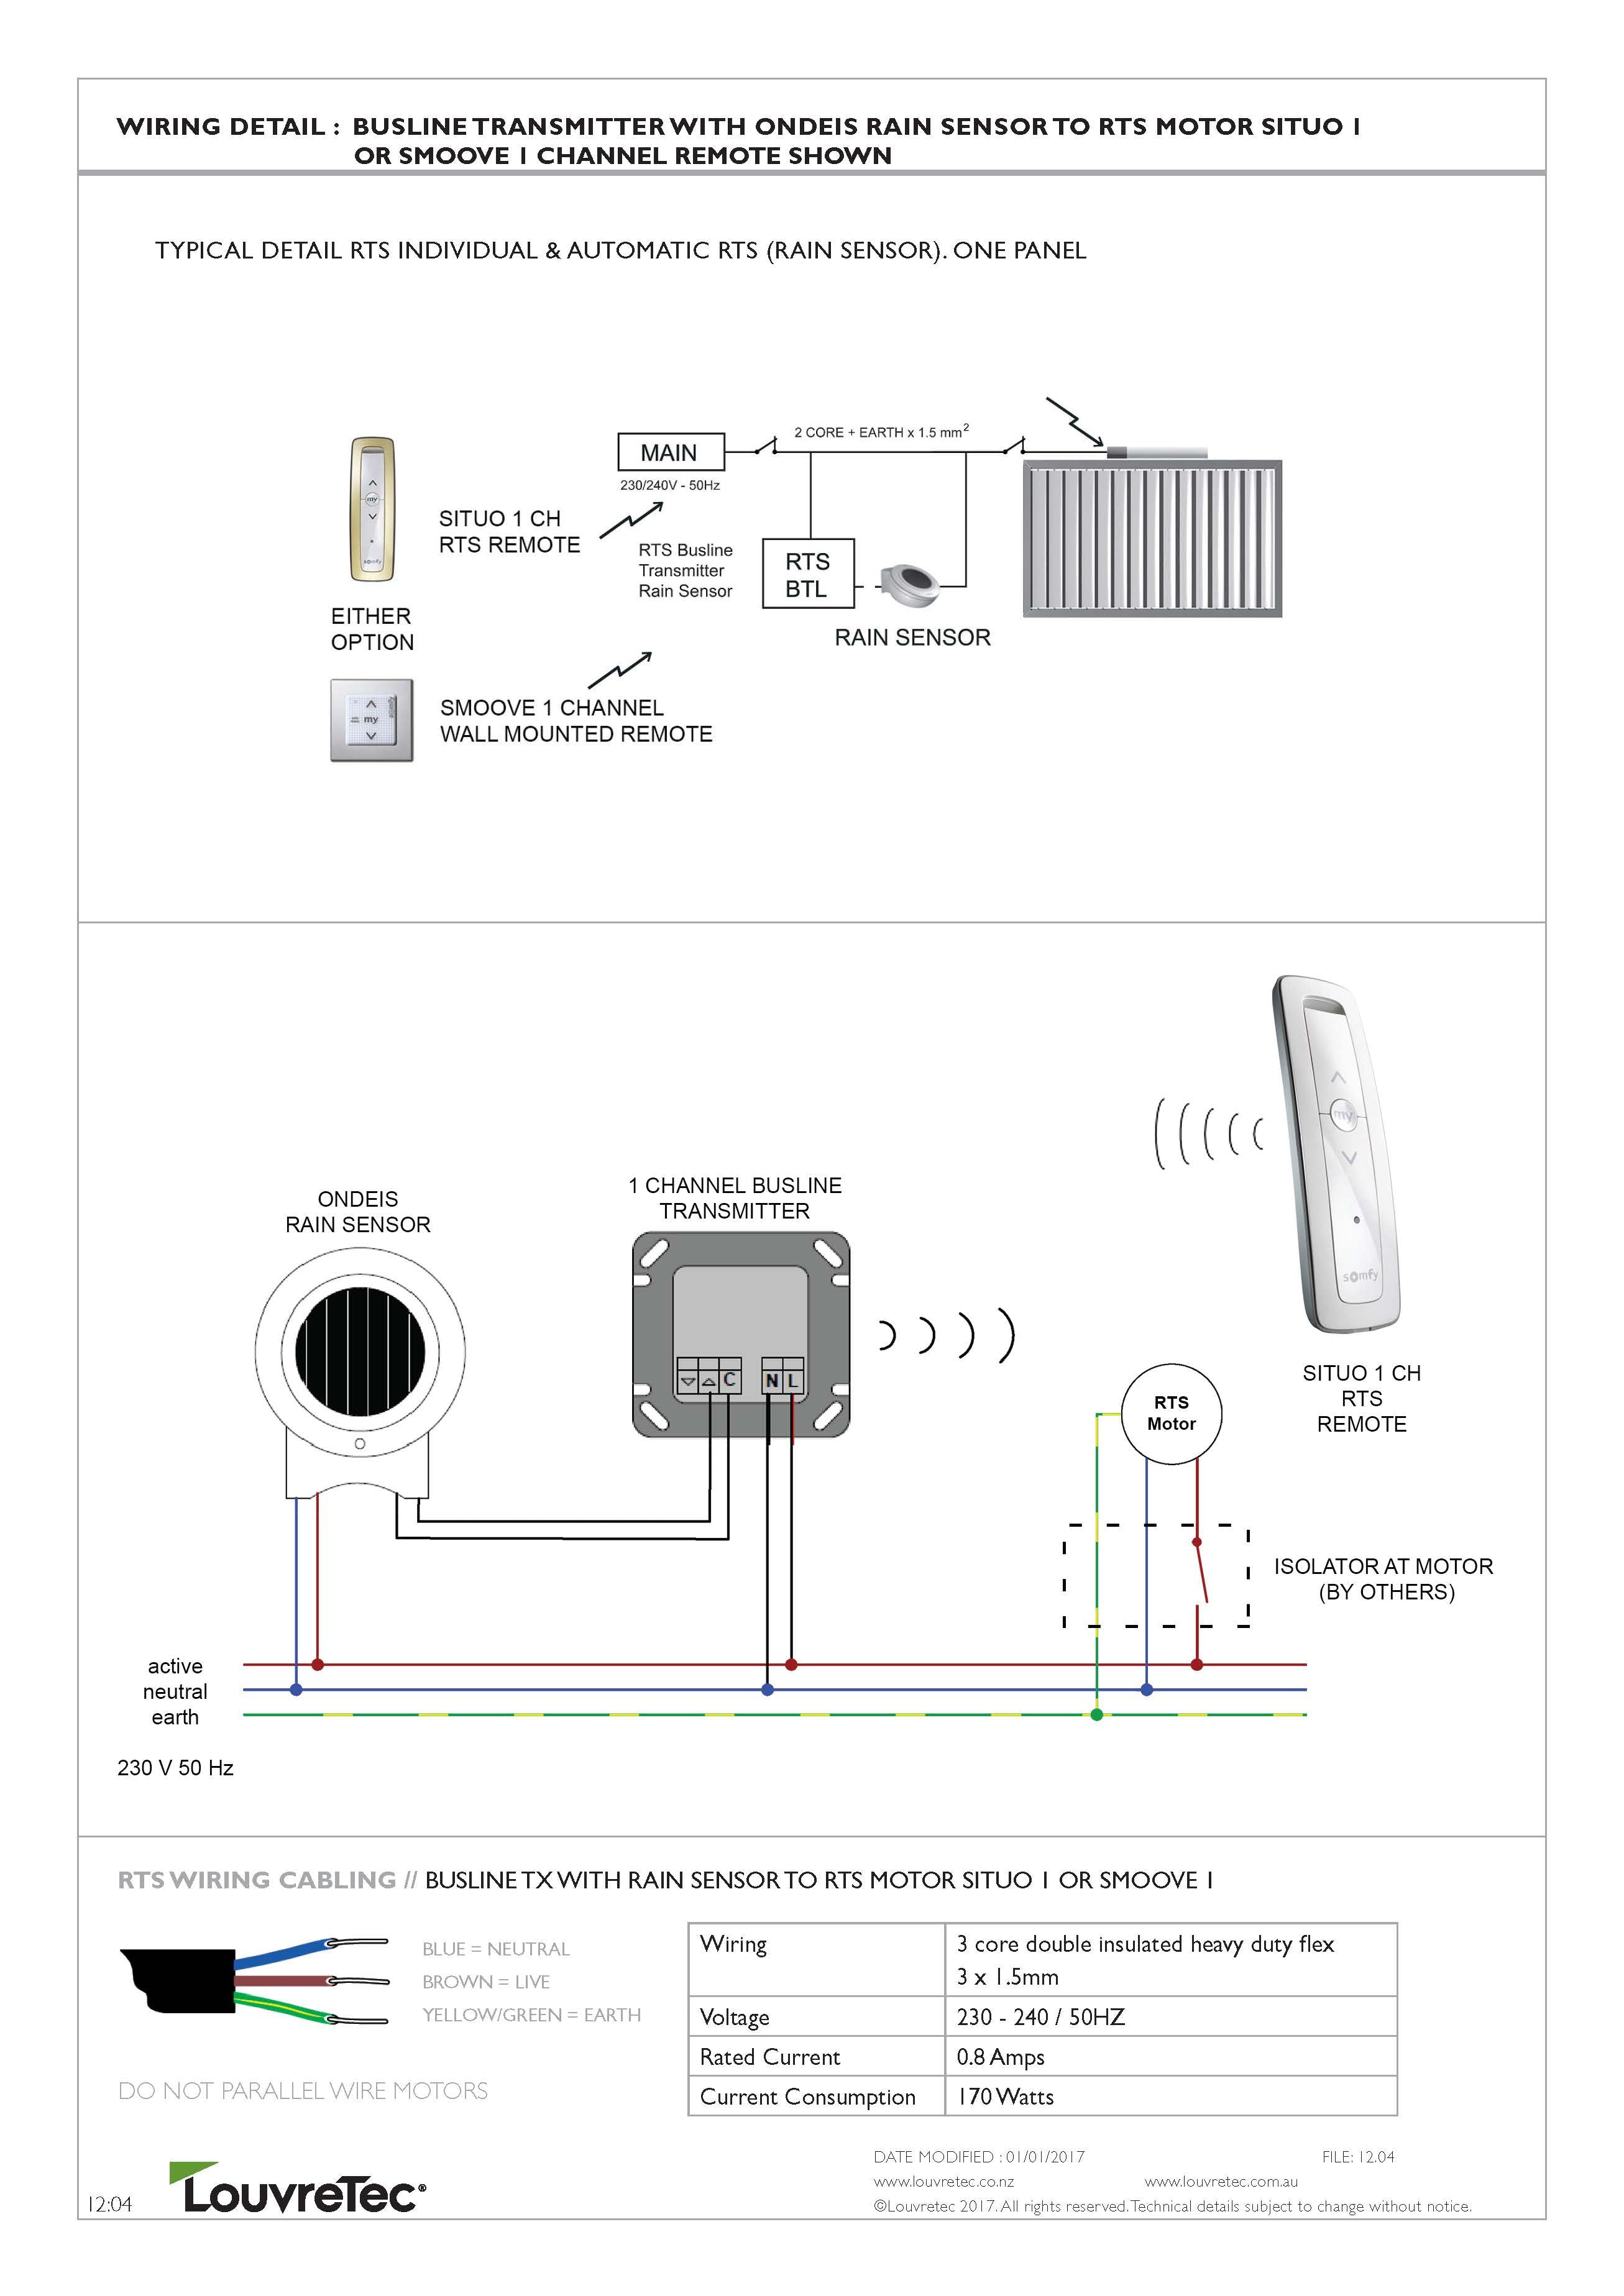 Somfy Wiring Diagram Dpdt Libraries Spdt Switch Rts Simple Schemasomfy Library Basic Motor